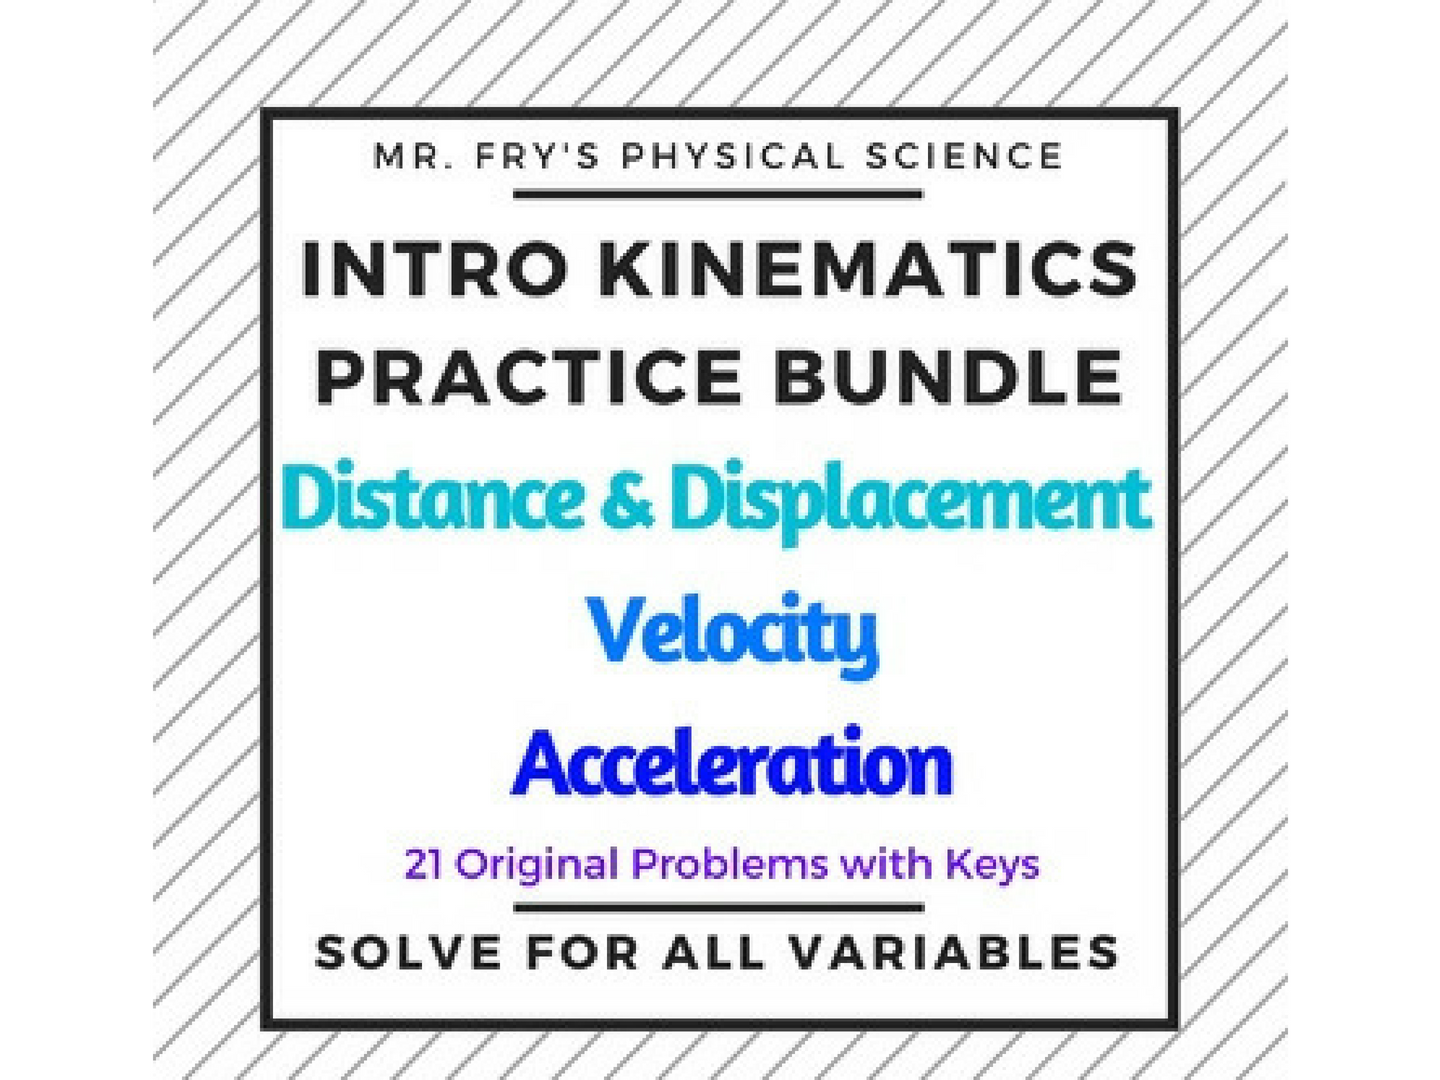 Intro Kinematics Bundle